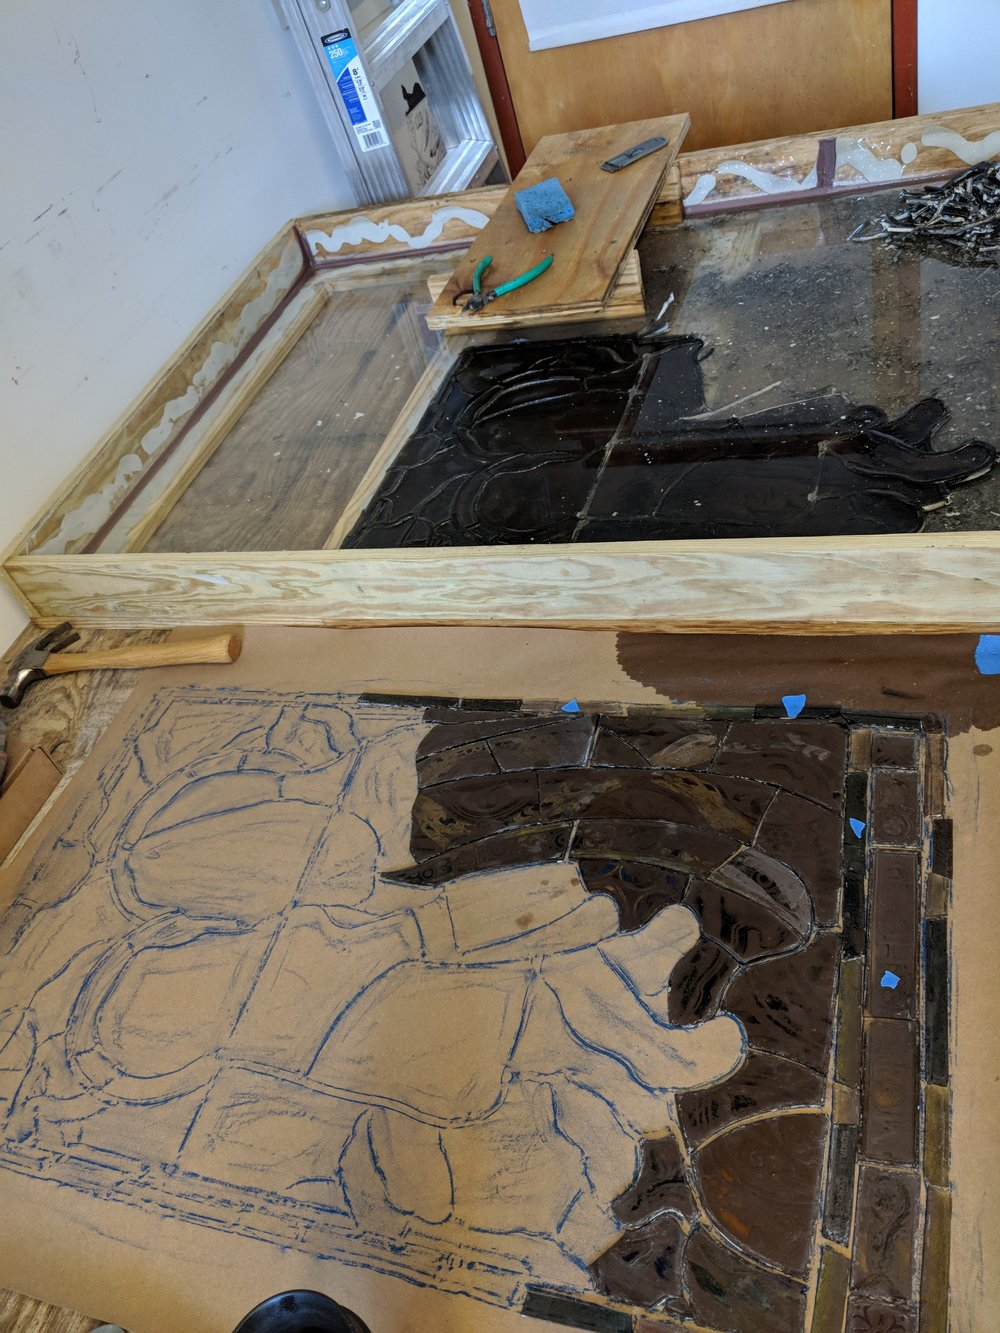 The panel is then taken apart piece by piece, the old lead is disposed of and the glass is carefully cleaned.